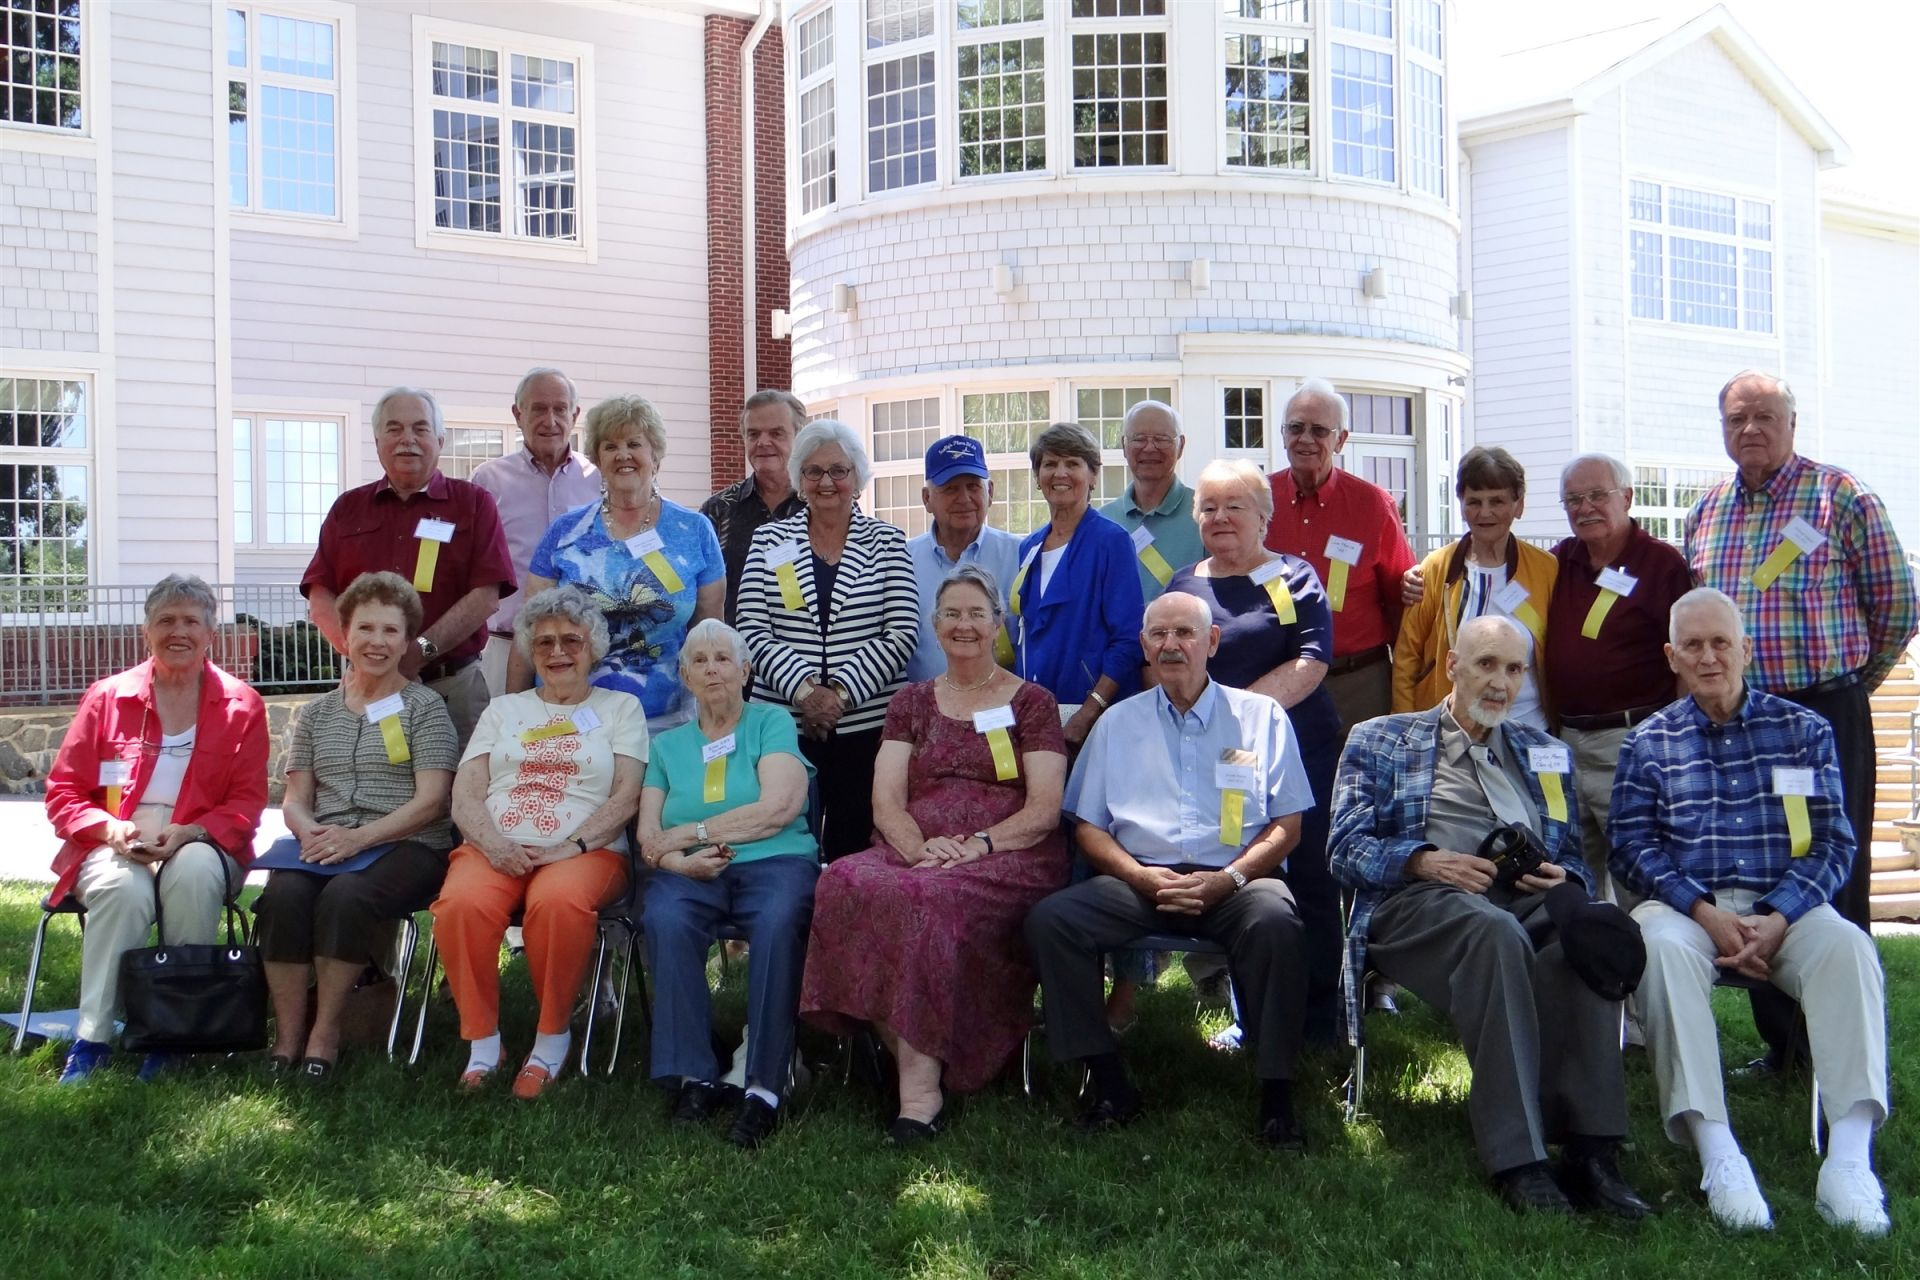 Members of the 30s, 40s and 50s joined together on campus to reminisce and reconnect at our first June reunion.